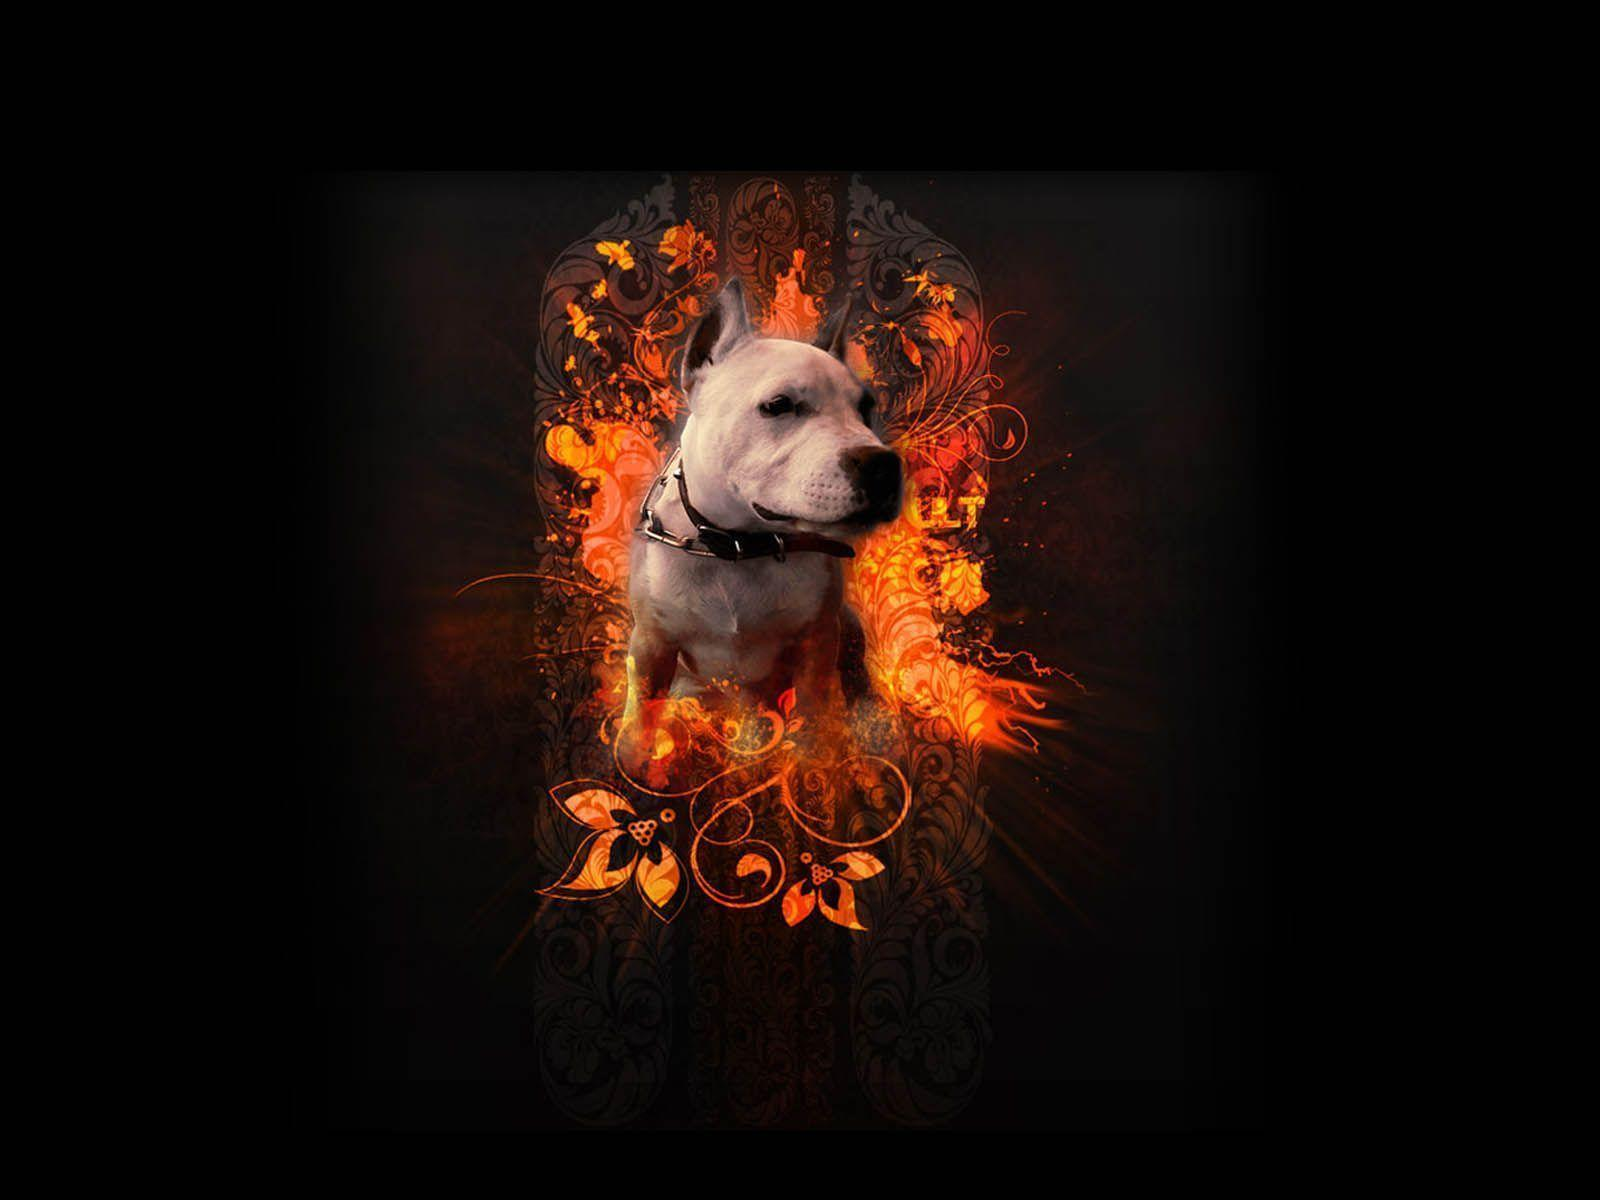 pittbull wallpapers wallpaper cave